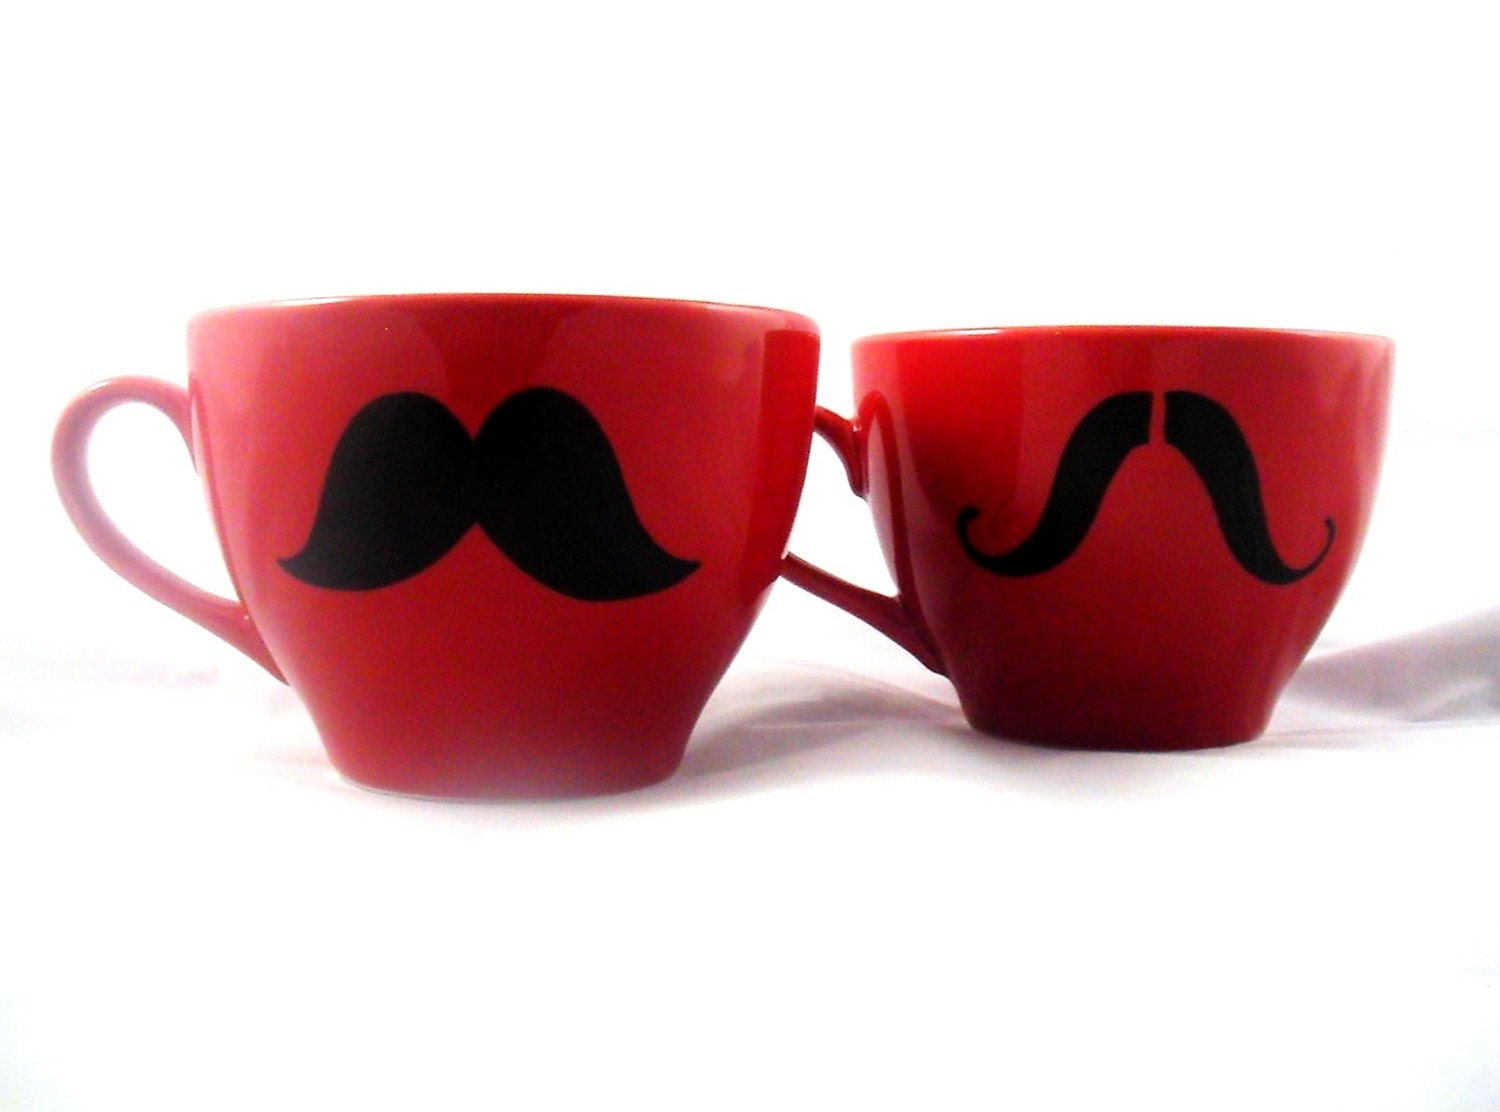 Giant coffee mustache mug set of 2